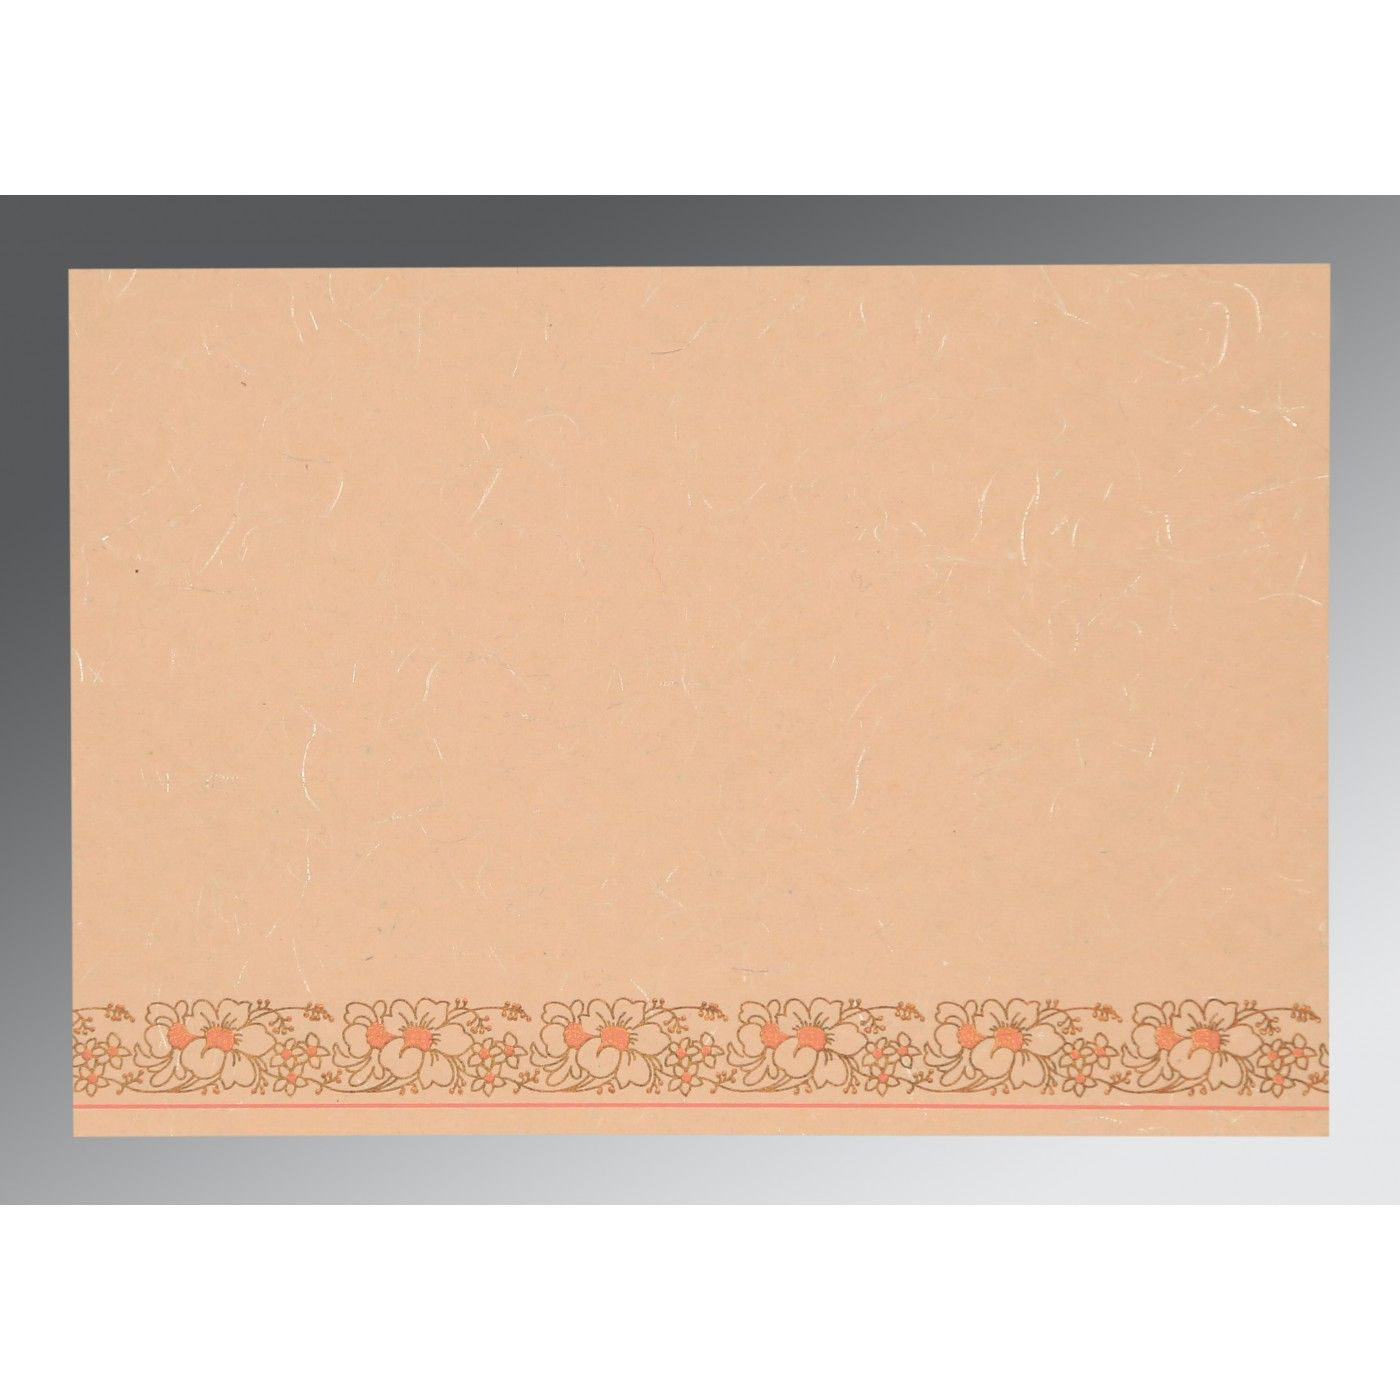 PEACH HANDMADE SILK SCREEN PRINTED WEDDING INVITATION : CG-8207C - IndianWeddingCards